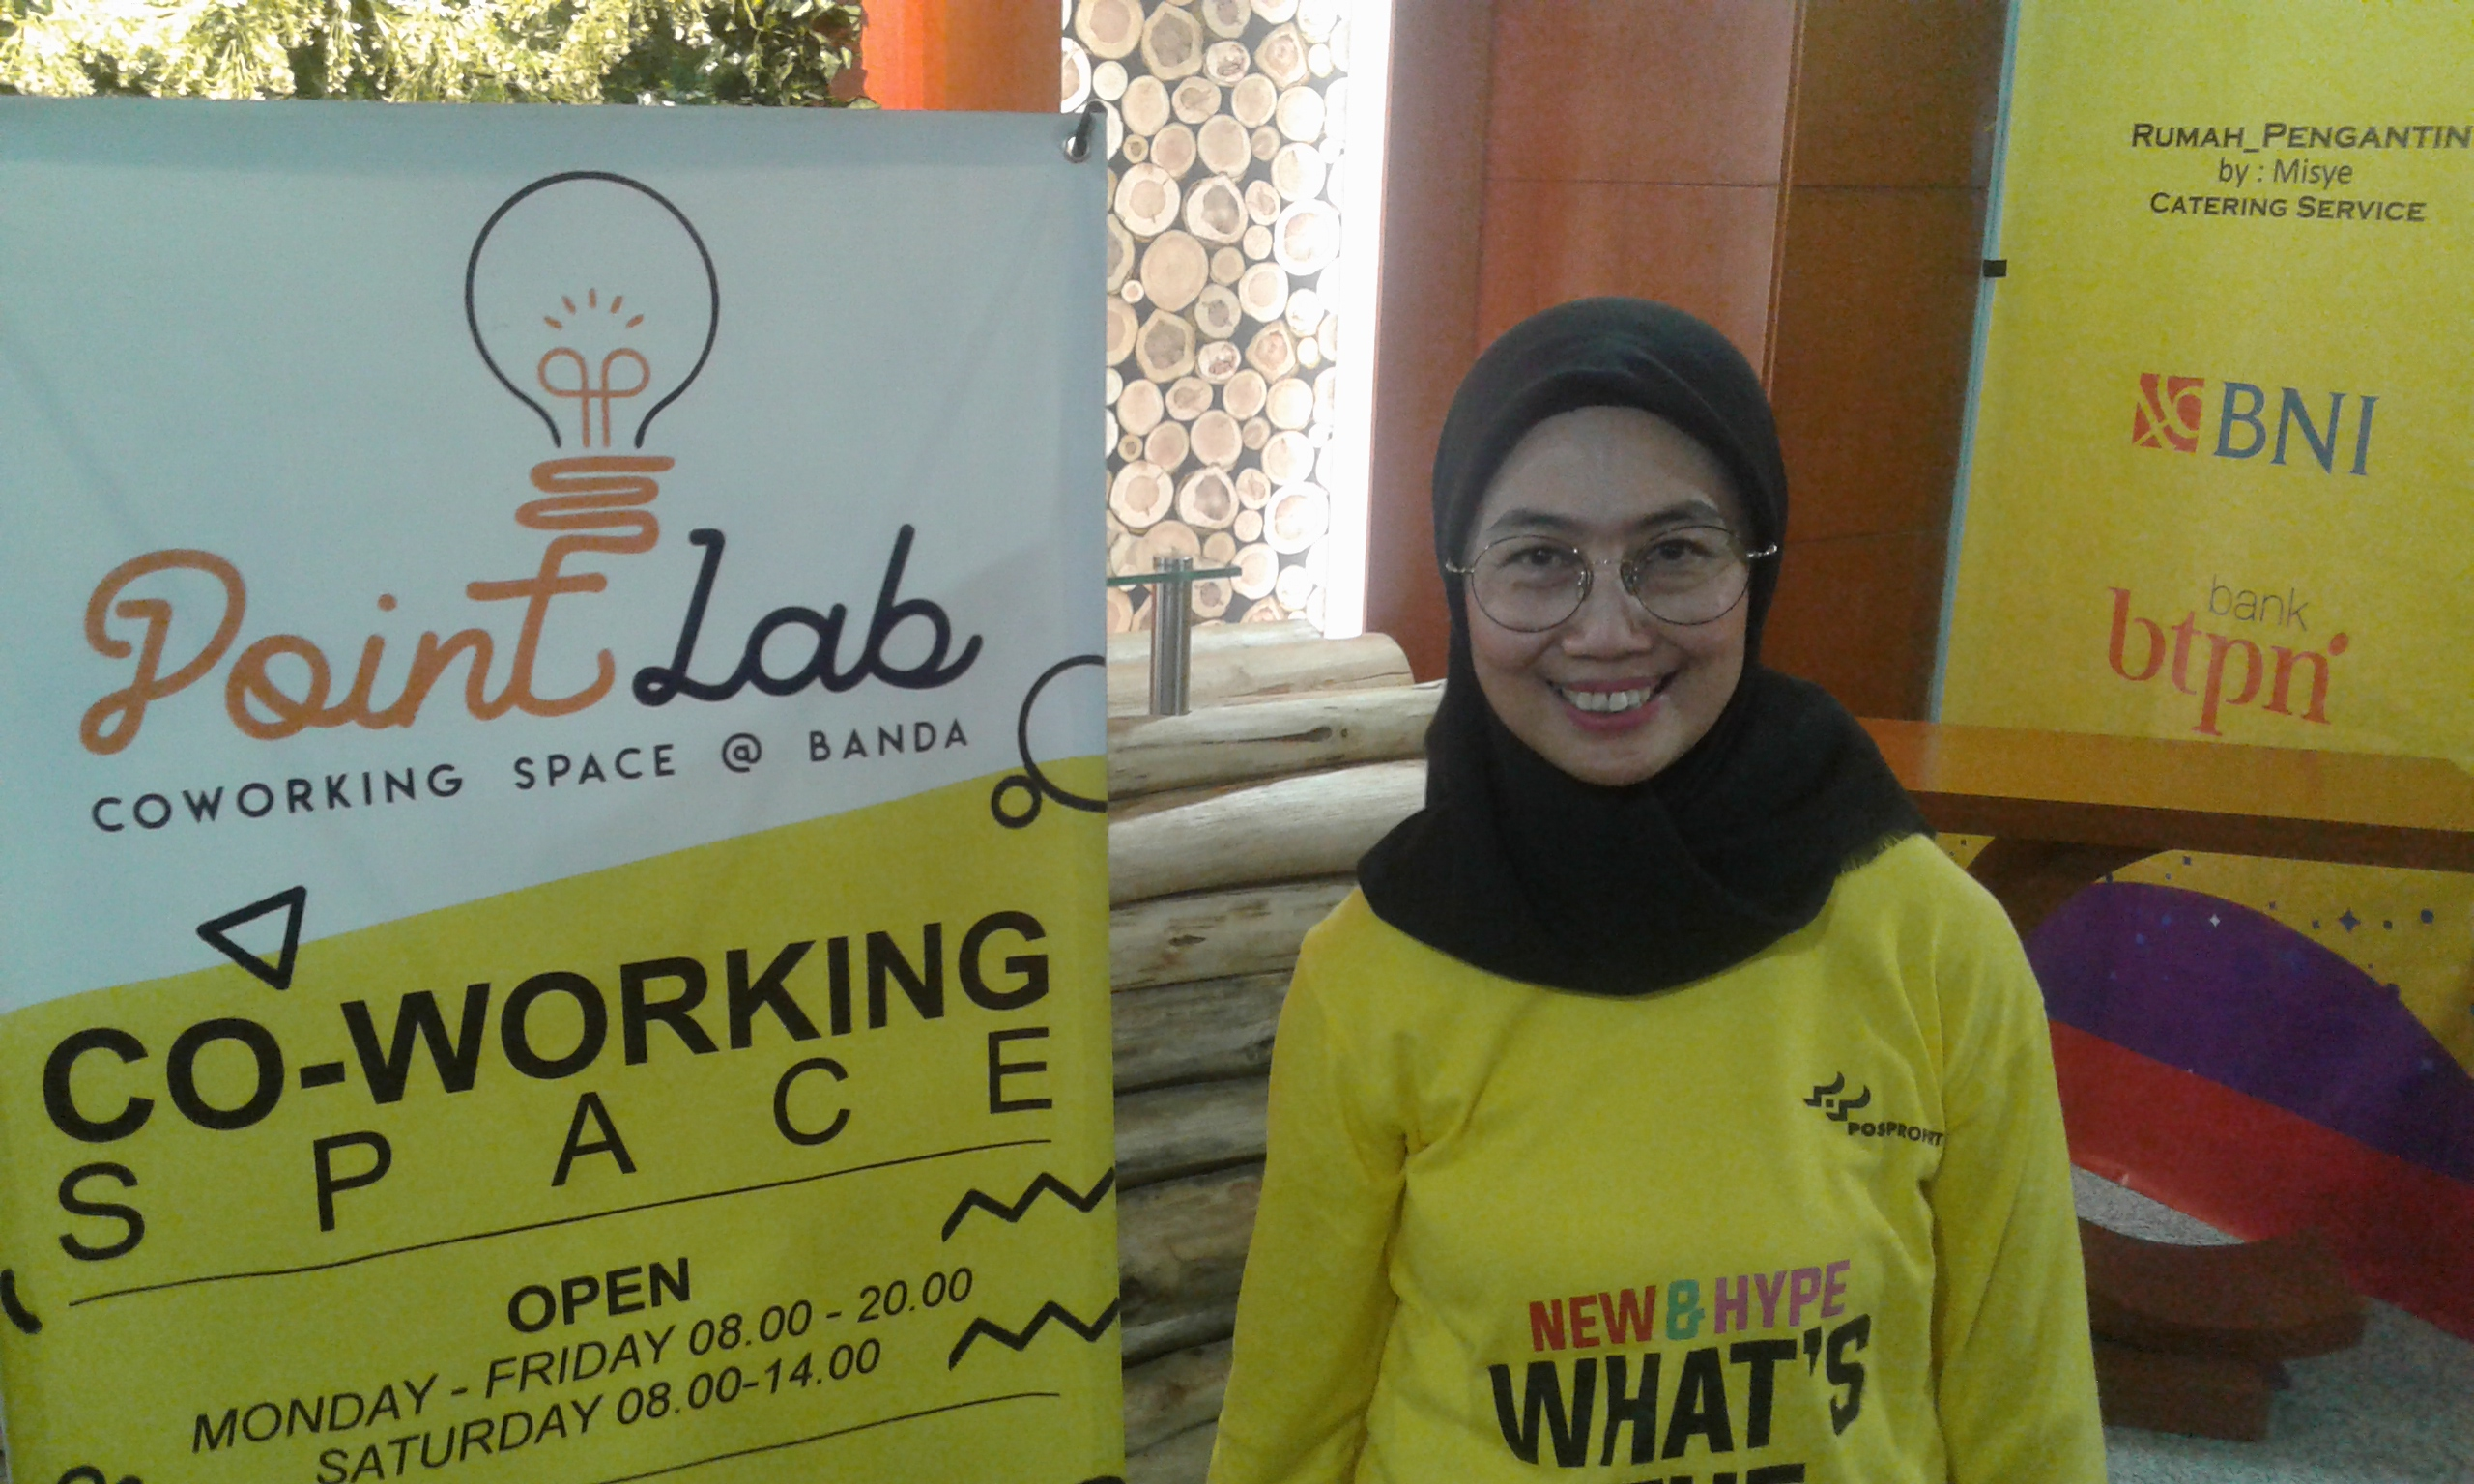 PT Pos Properti Indonesia Luncurkan Point Lab Co-Working Space di Bandung